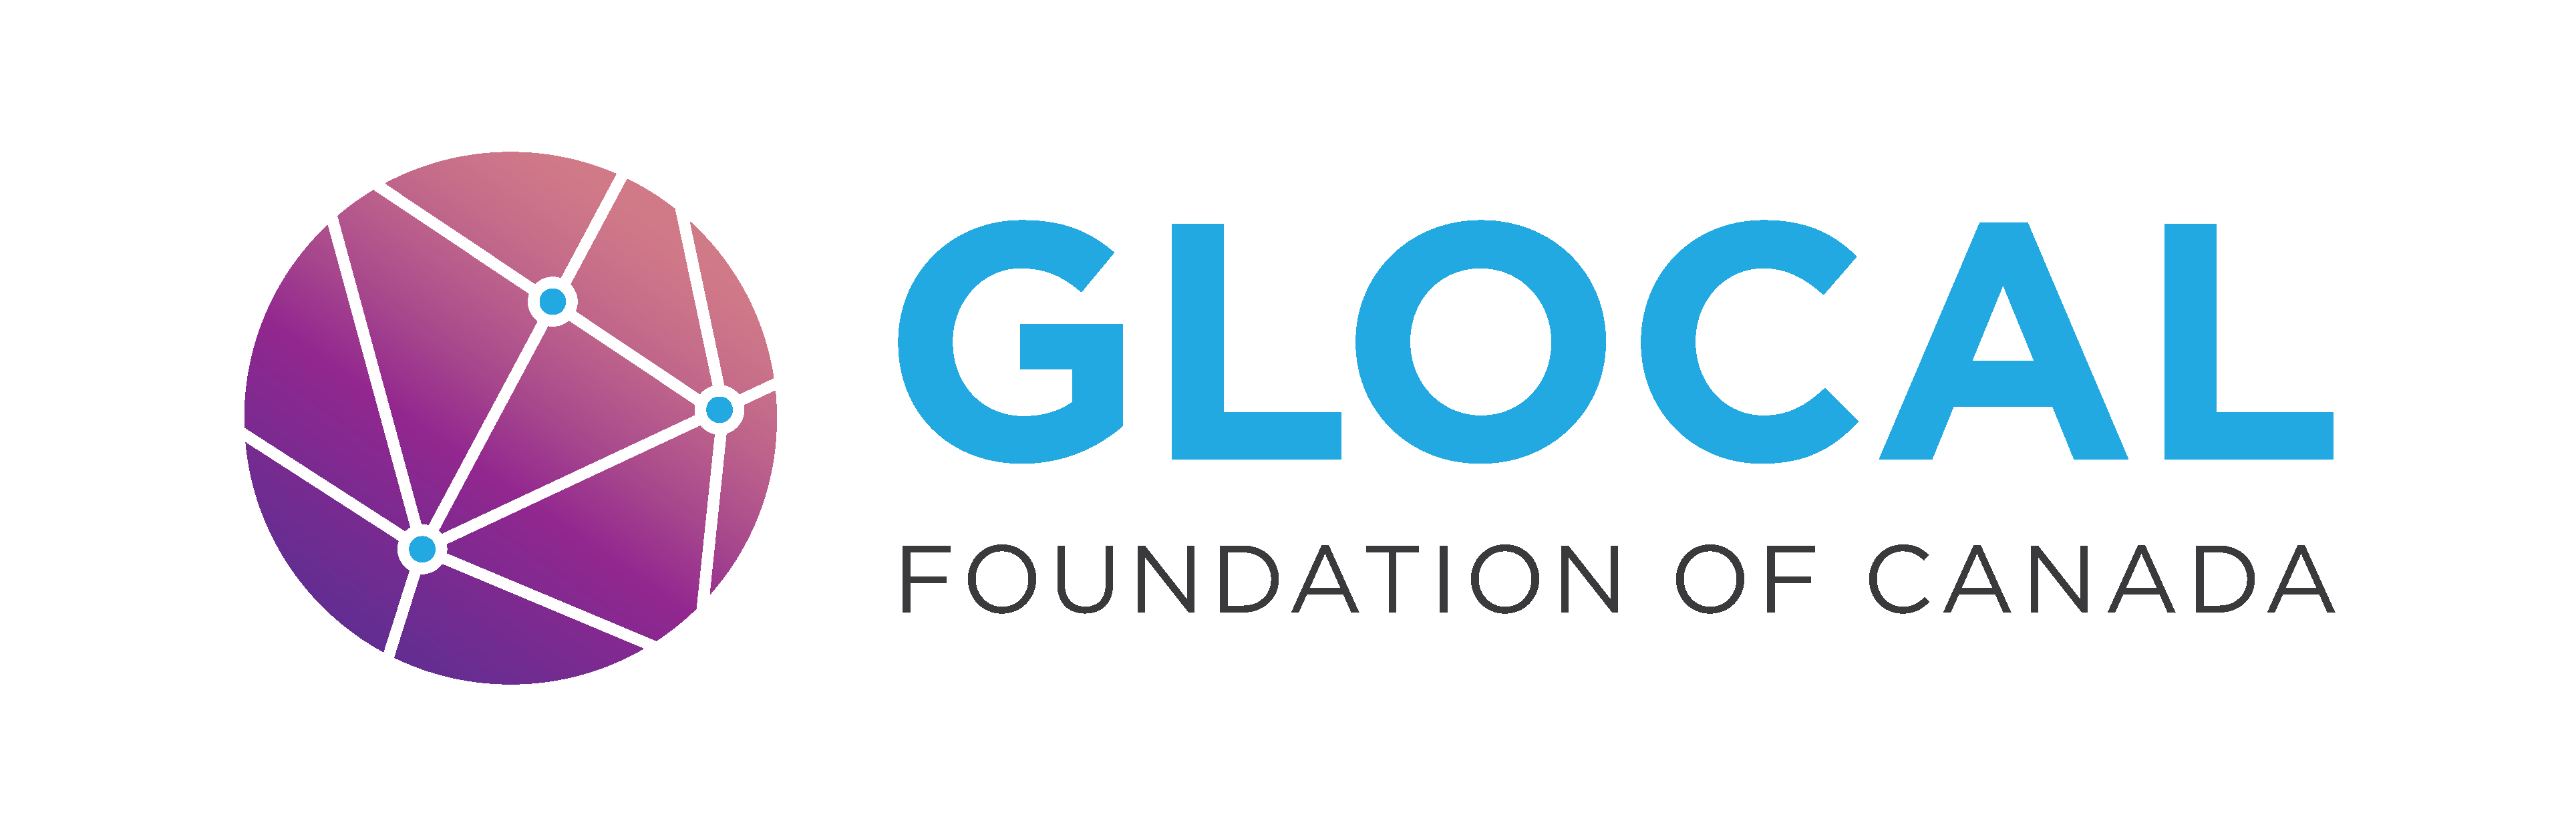 GLOCAL Foundation of Canada Logo